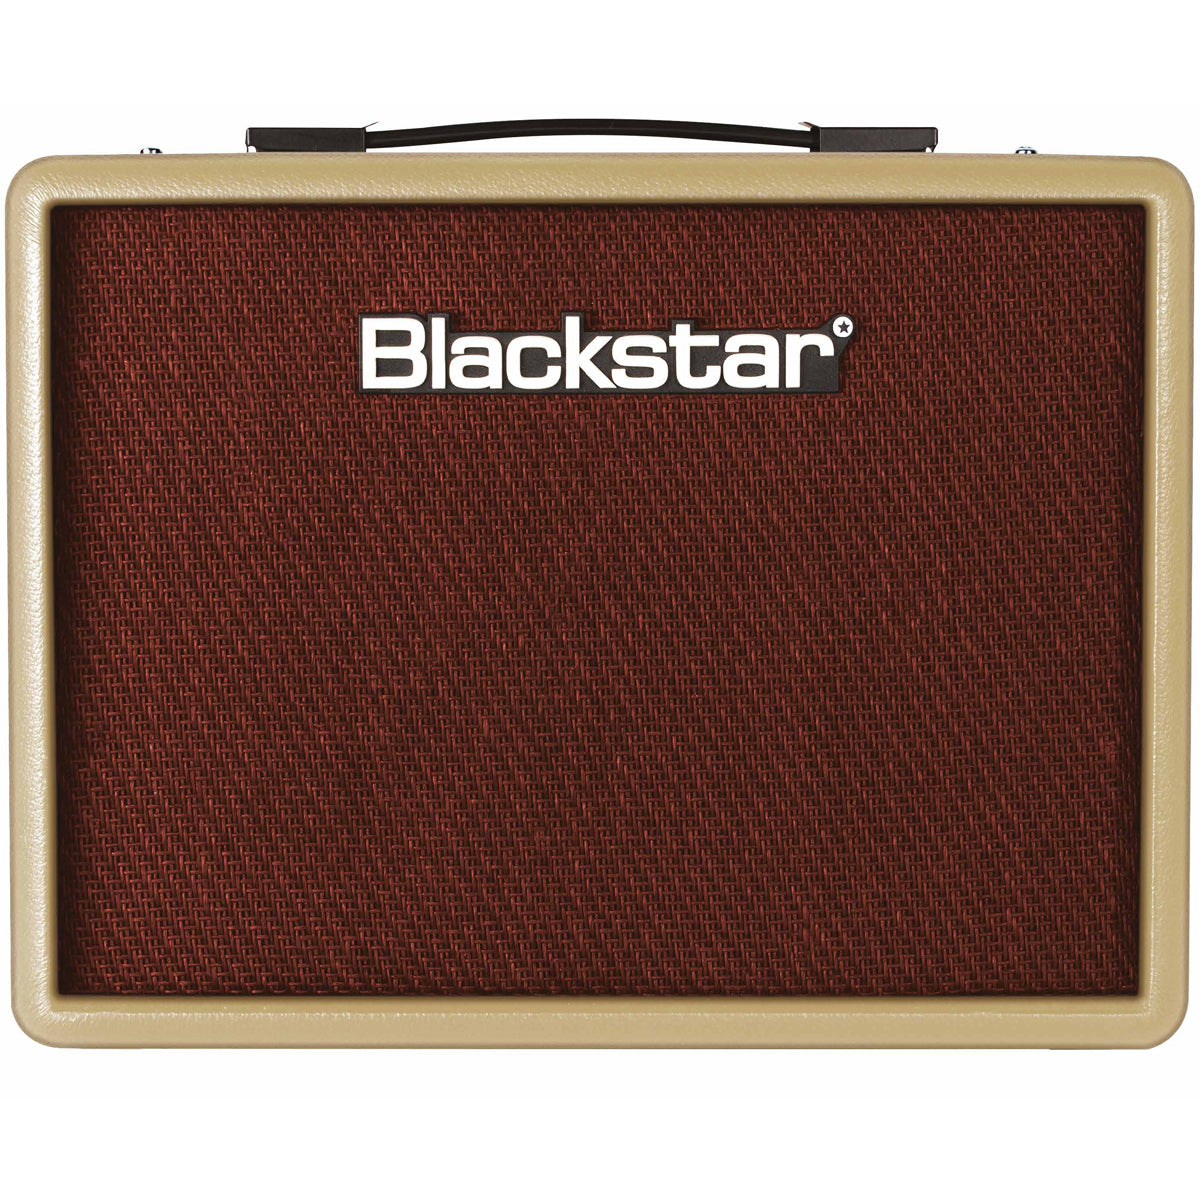 Blackstar Debut 15 Guitar Amplifier 15w Amp w/ FX